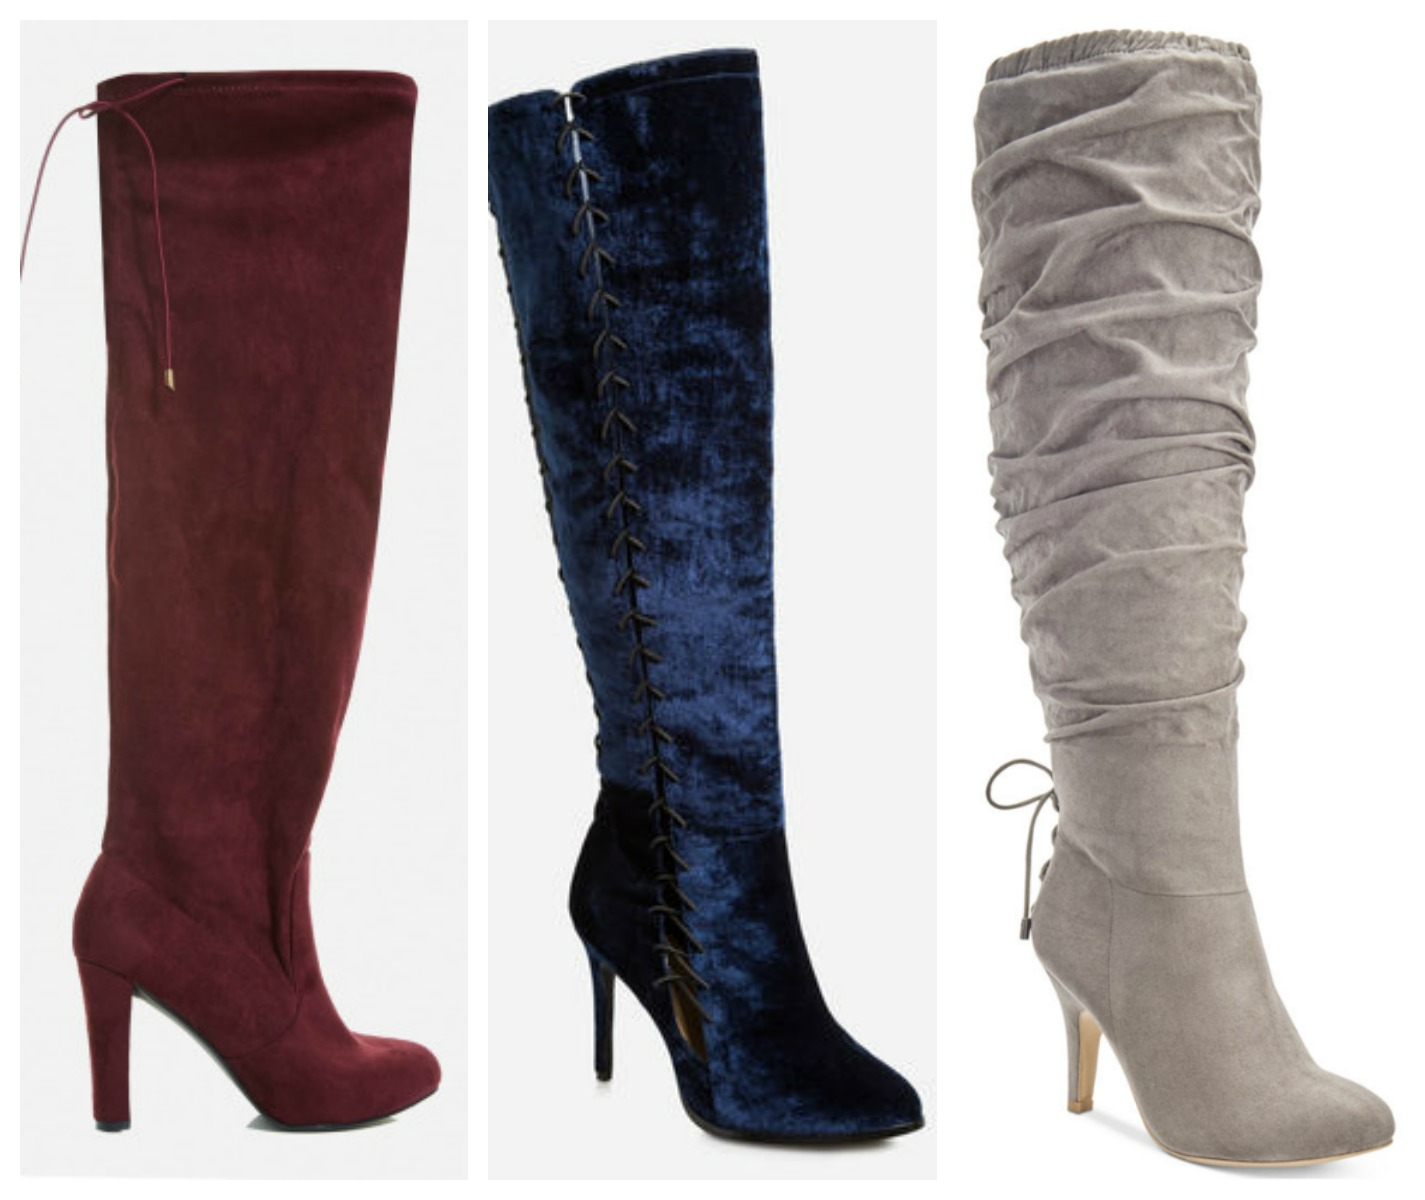 11 Sexy Wide Calf Boots Up To Size 13